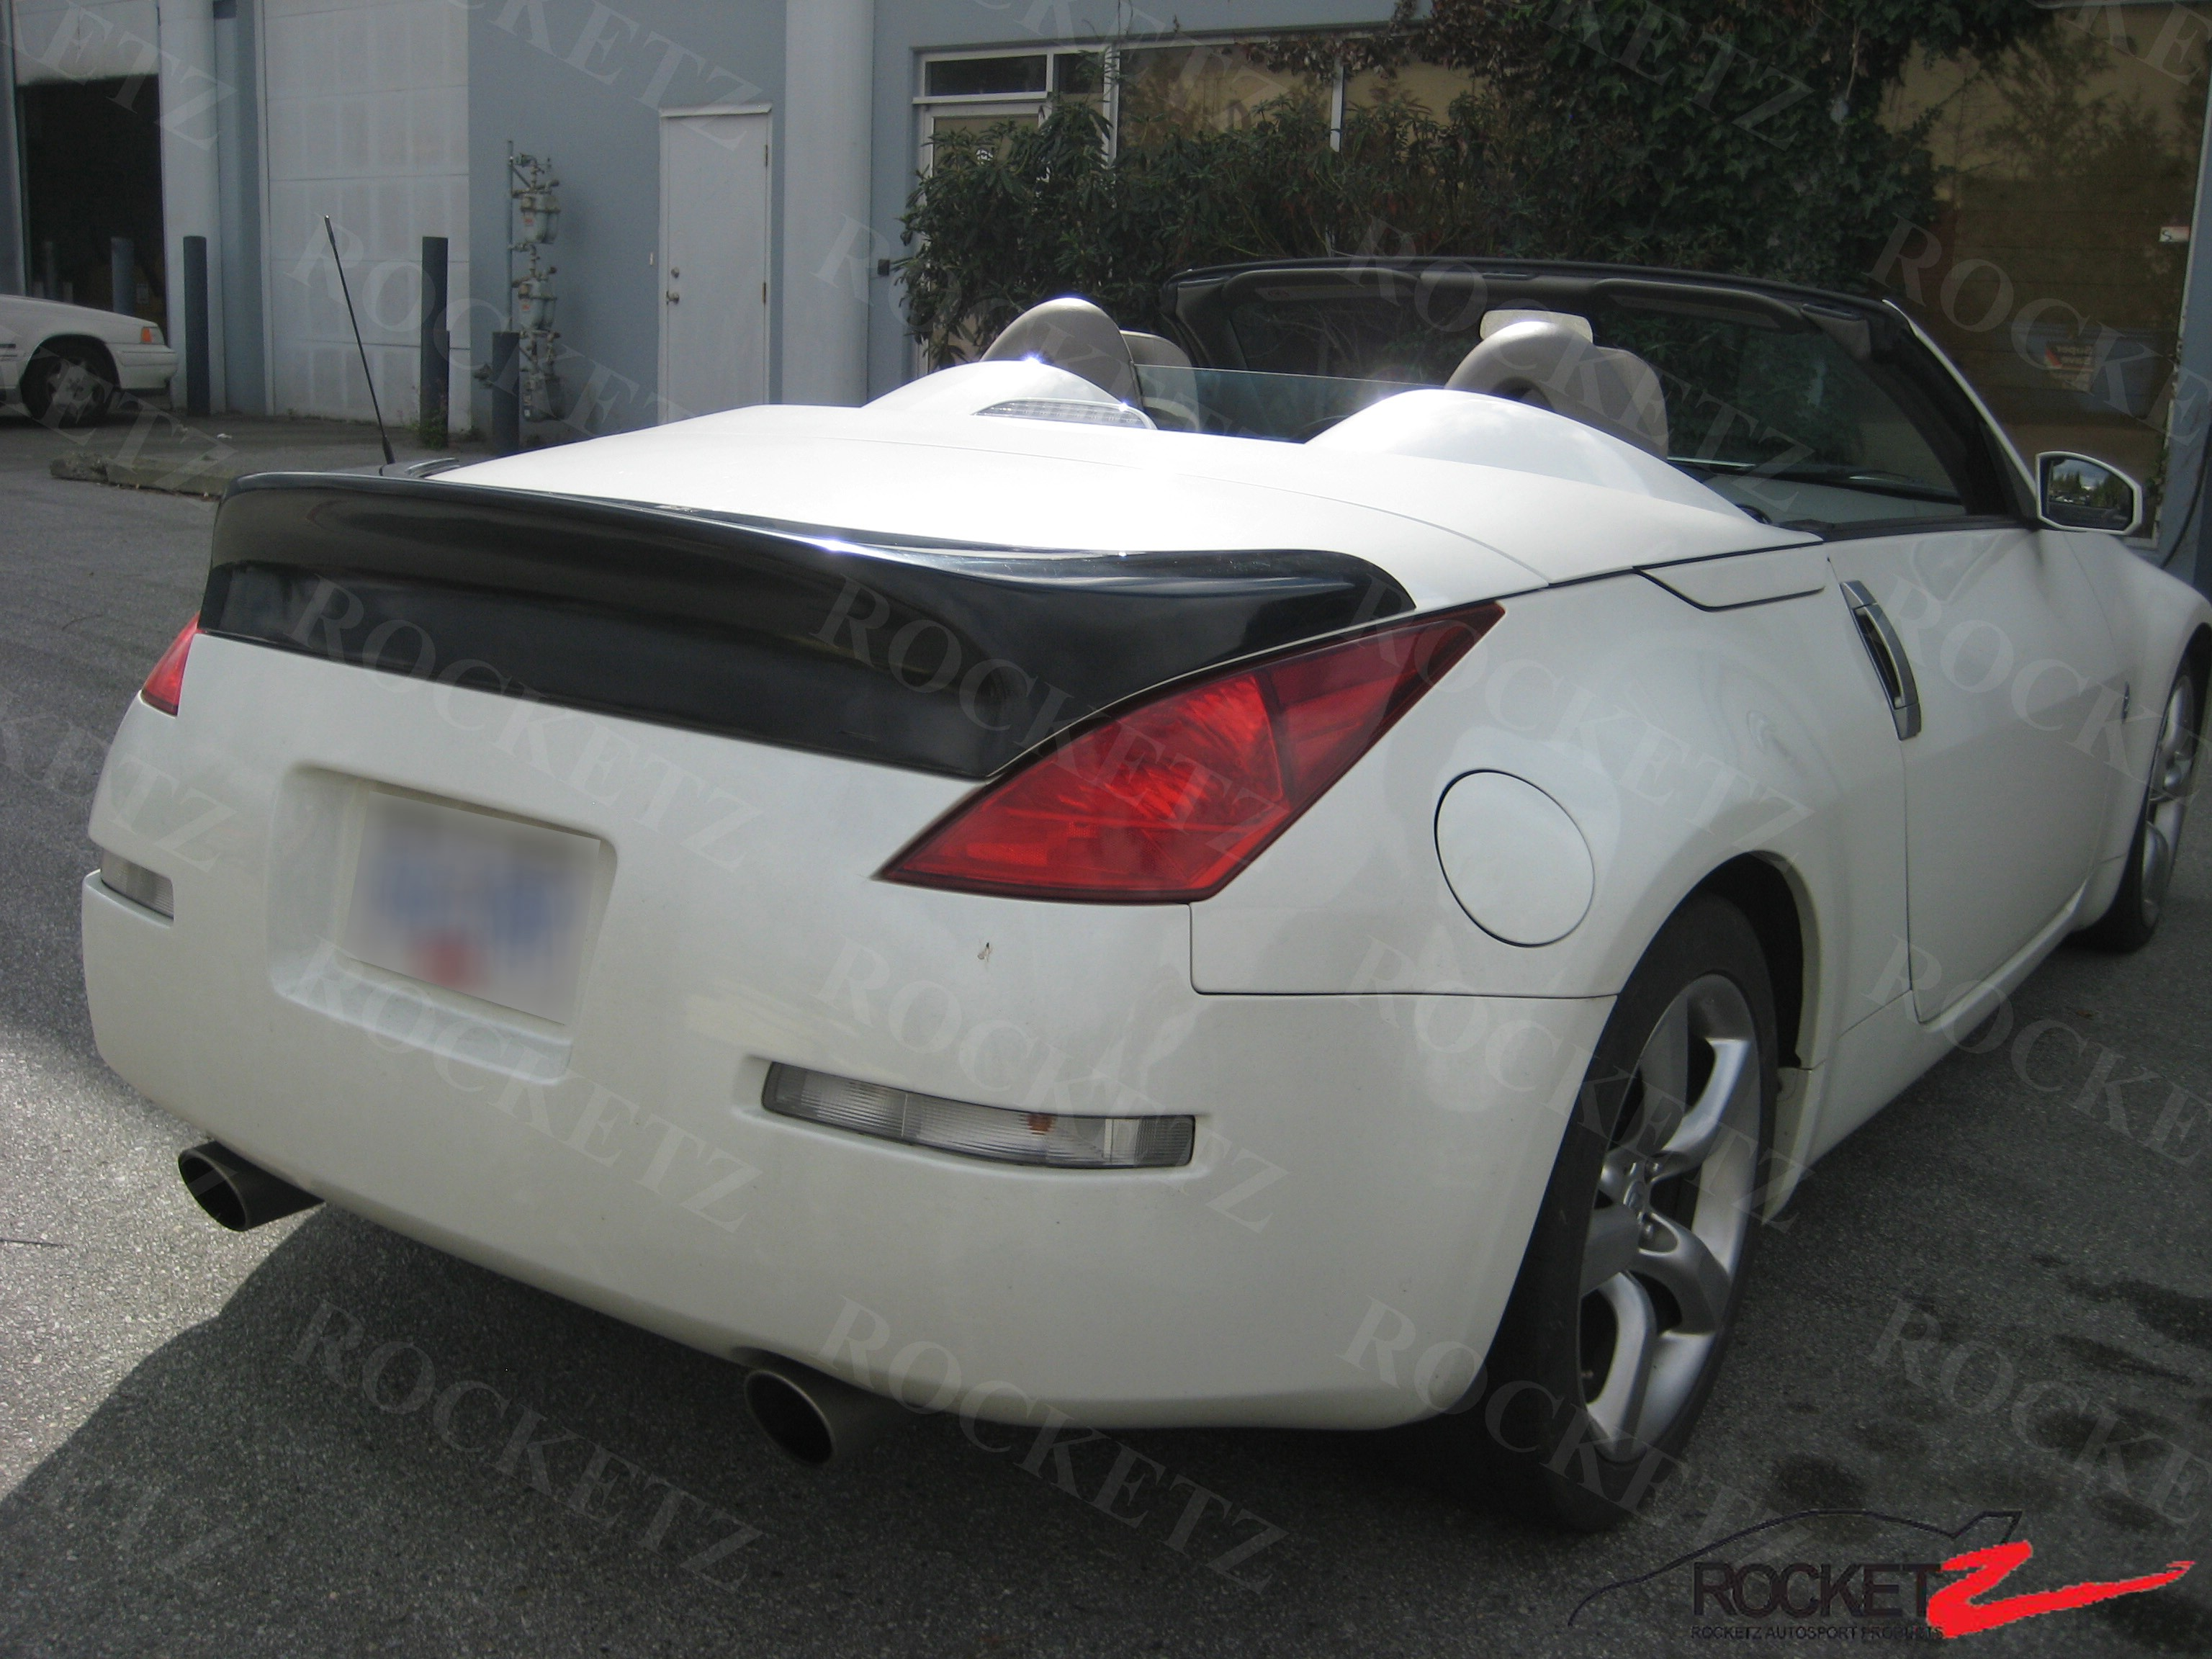 03 09 350z z33 ing style trunk spoiler wing usa canada fits height vanachro Choice Image